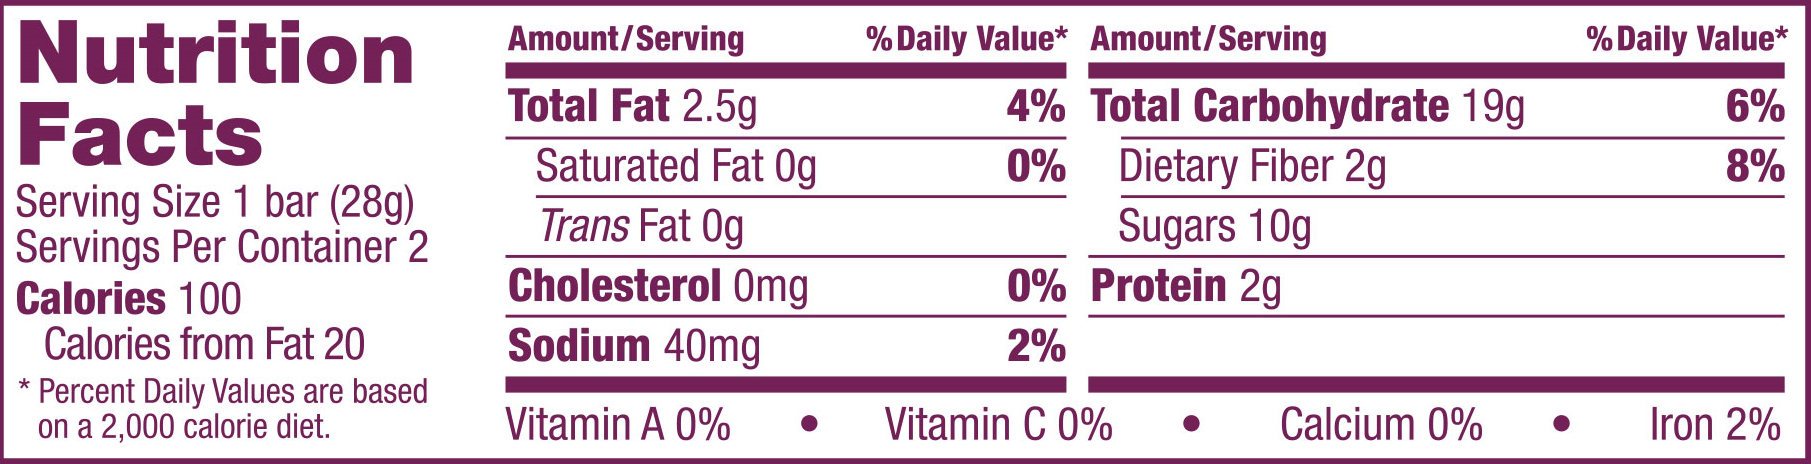 Whole Wheat Original Fig Nutrition Panel